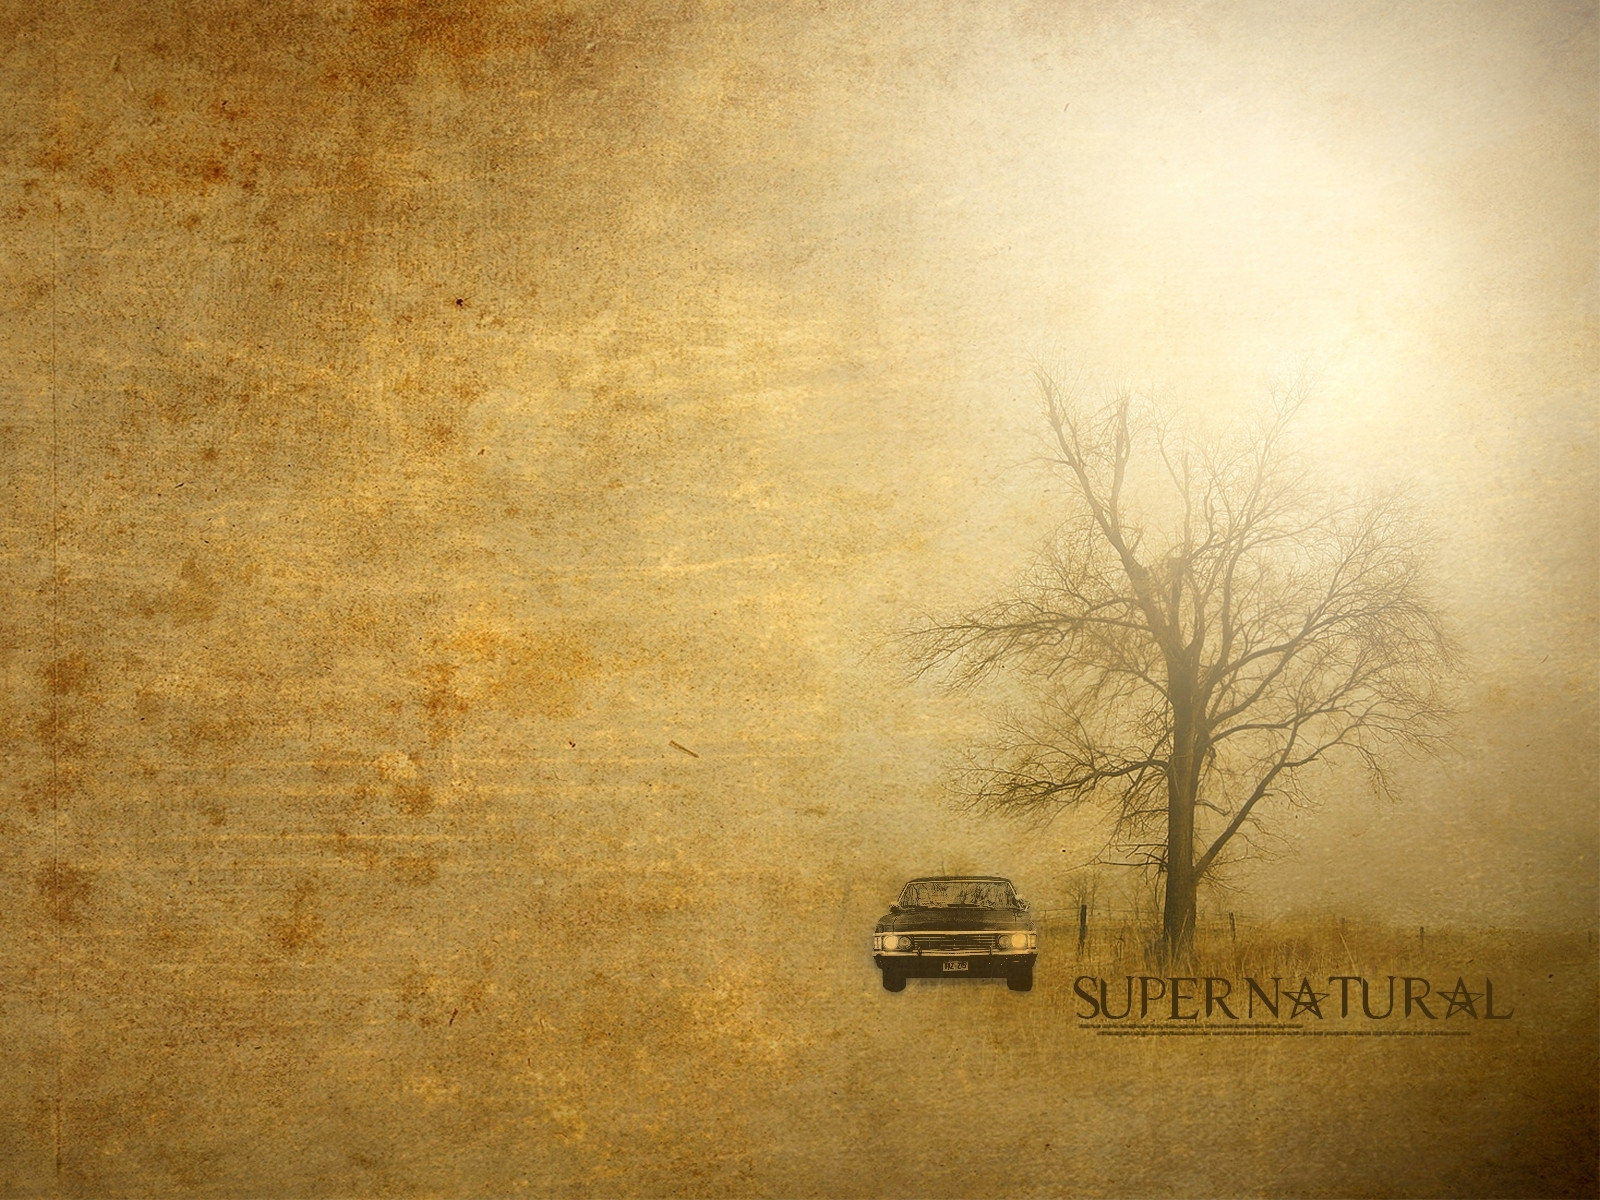 Supernatural Wallpapers 1600x1200